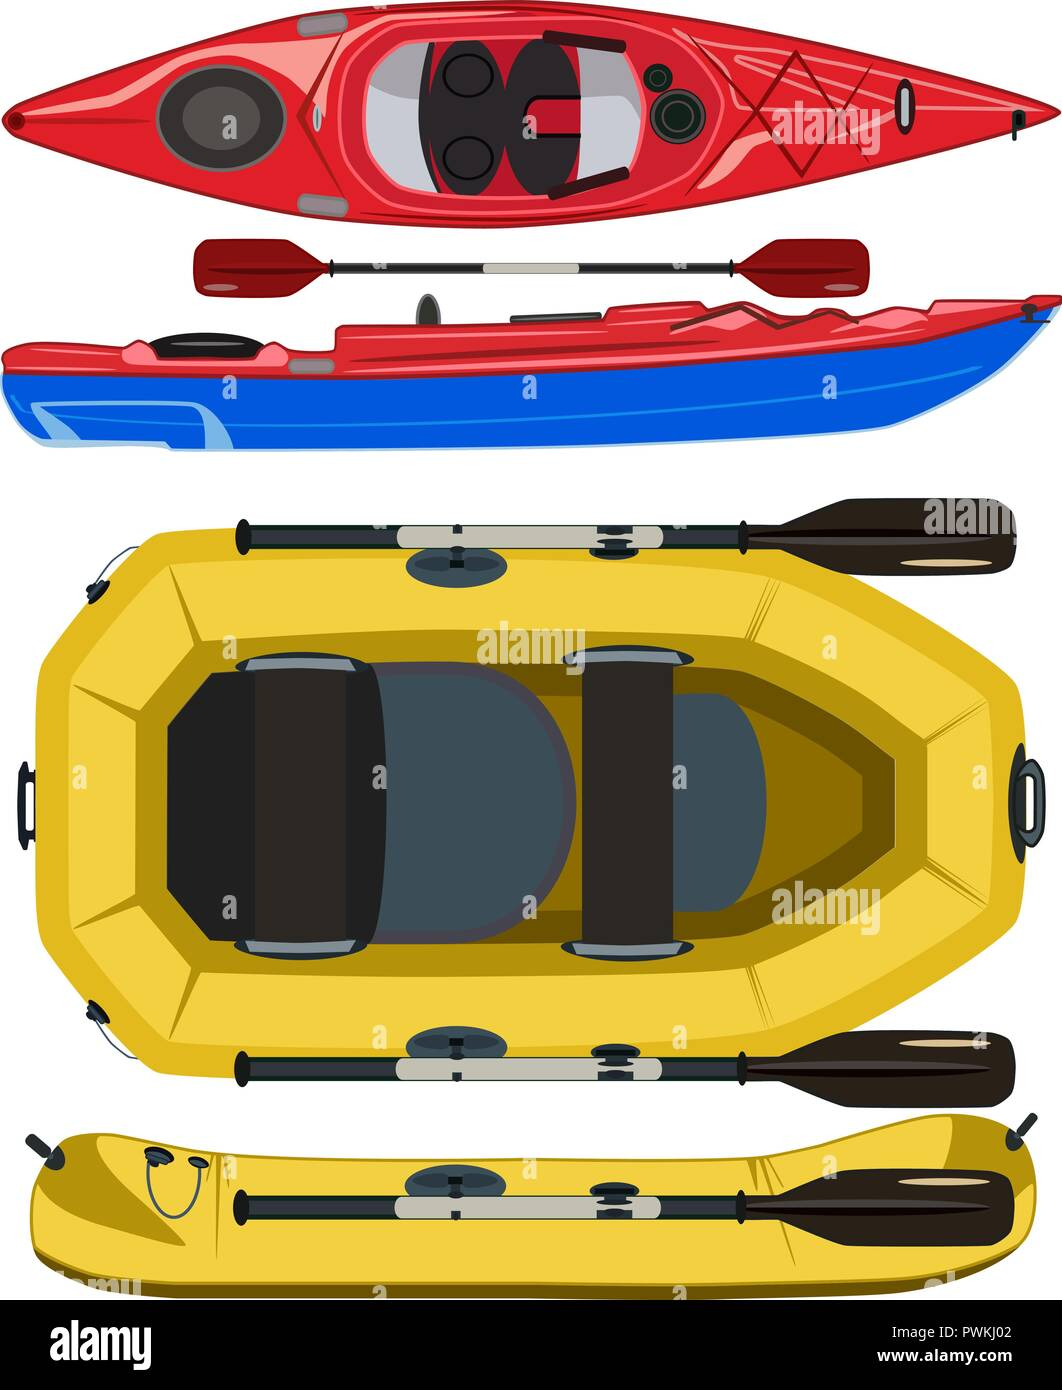 Kayak and rafting inflatable rubber boat vector flat illustration - Stock Vector